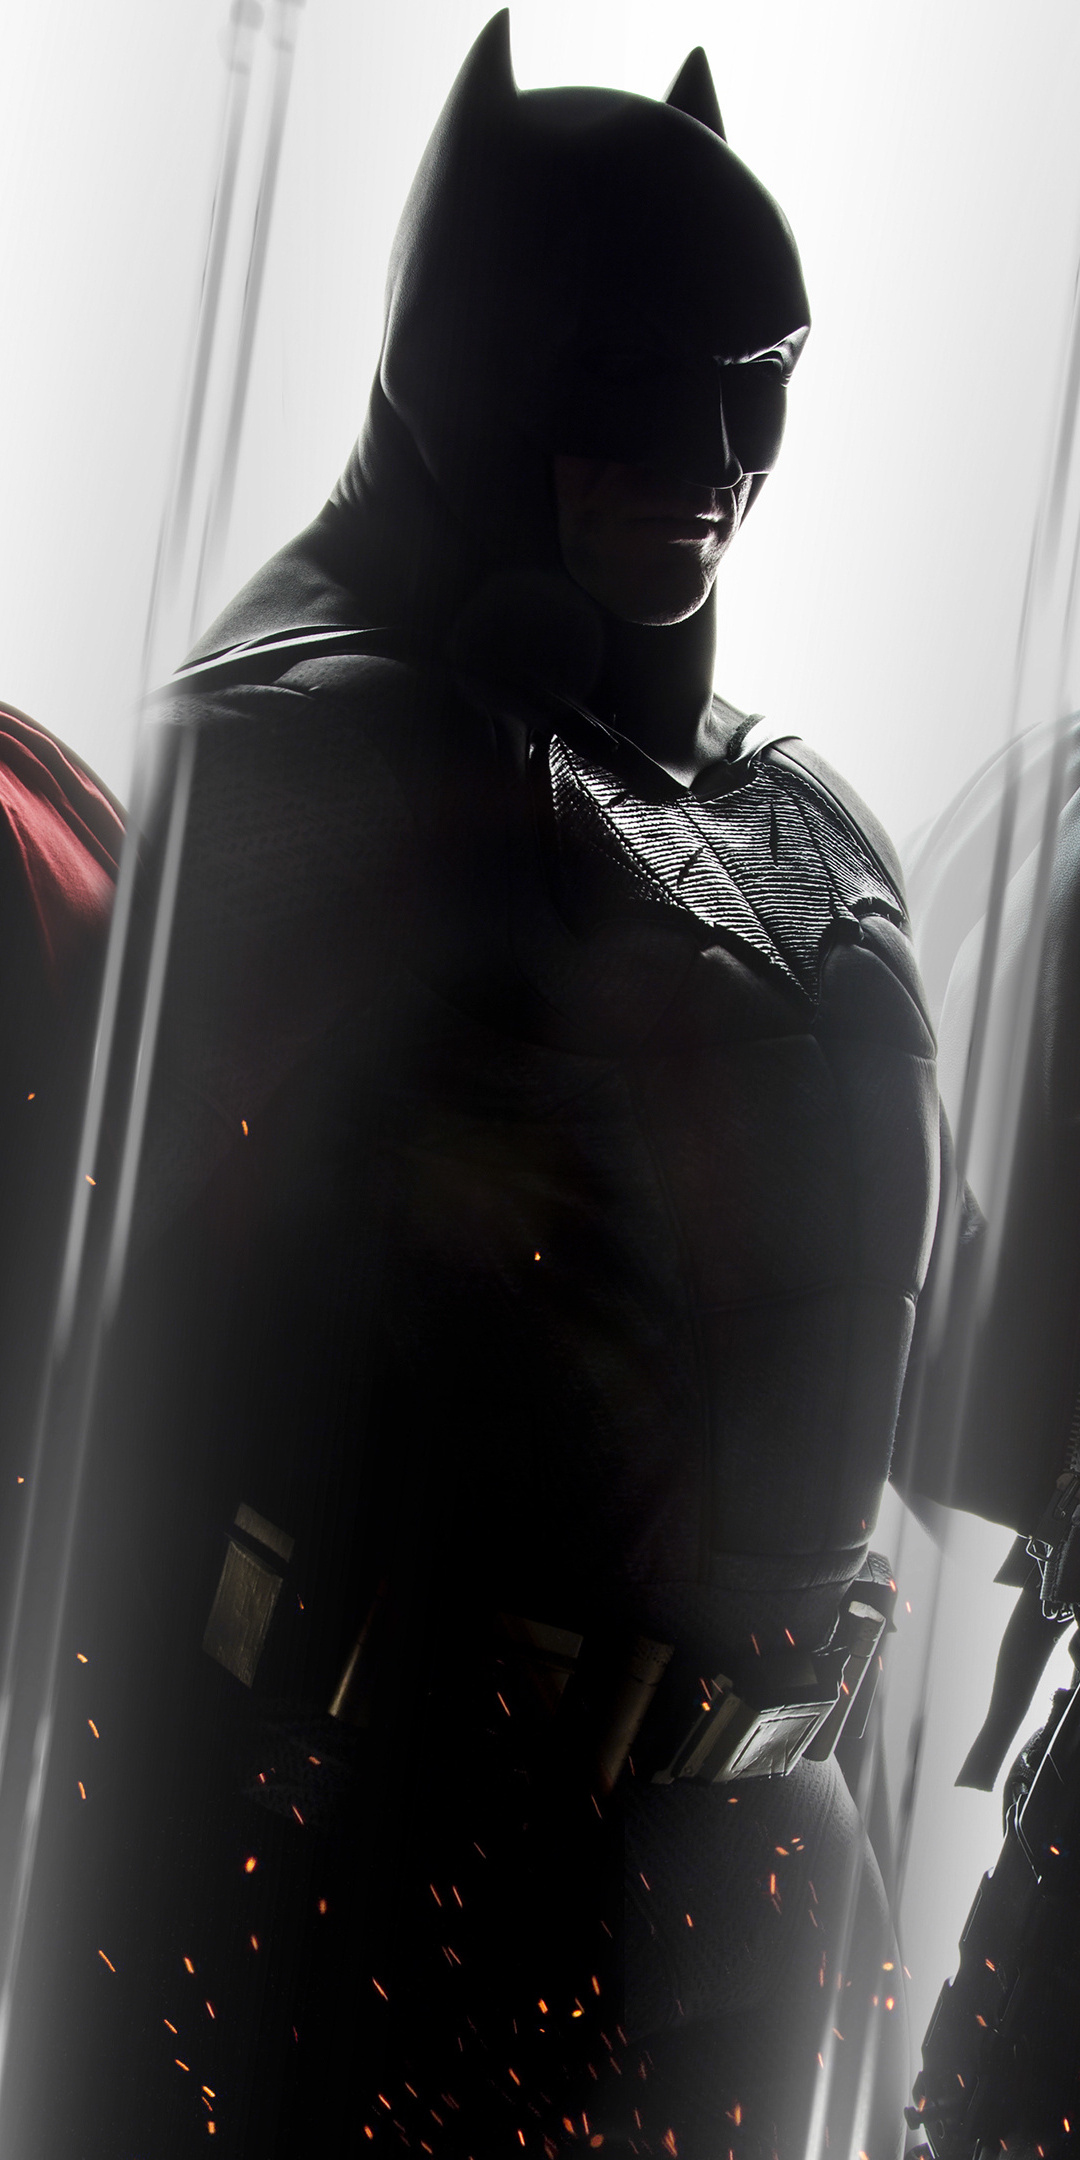 justice-league-4k-cosplay-i8.jpg